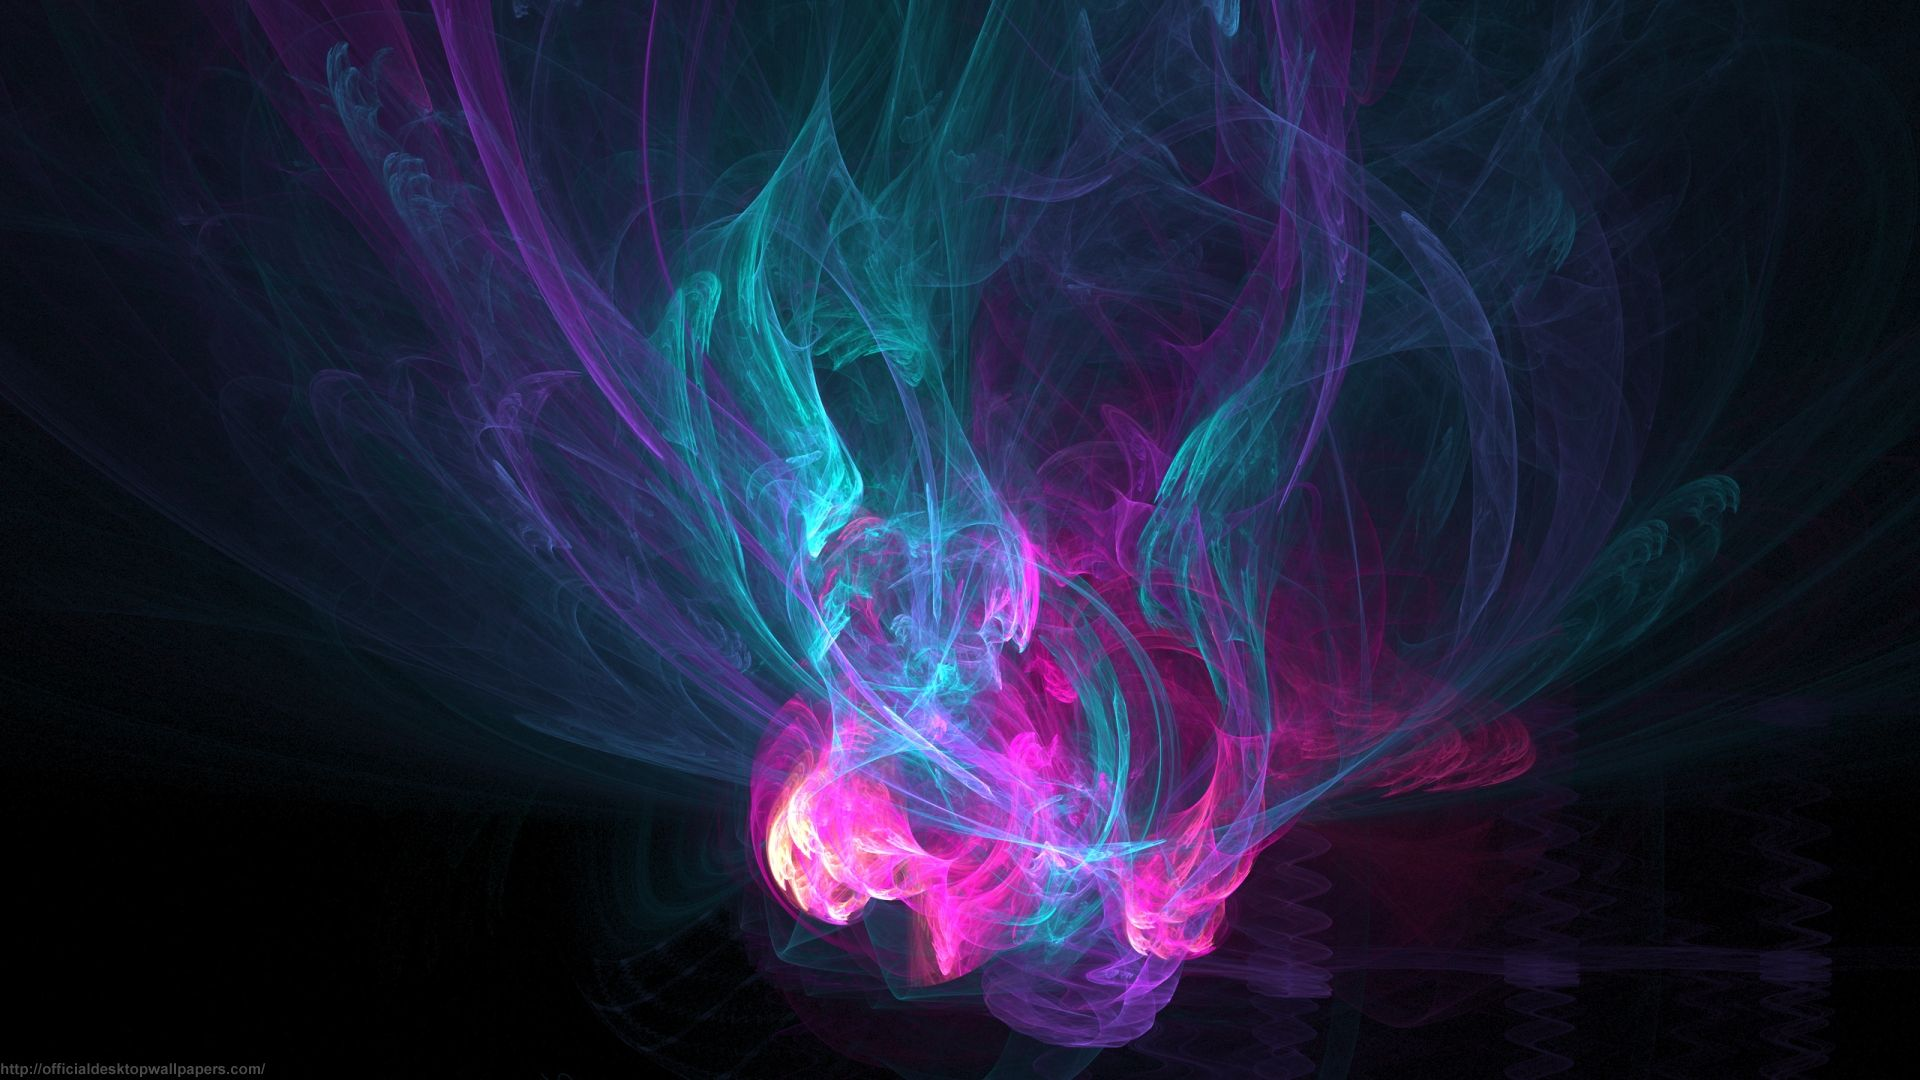 1920x1080 colored smoke widescreen hd abstract desktop wallpaper 1920x1080